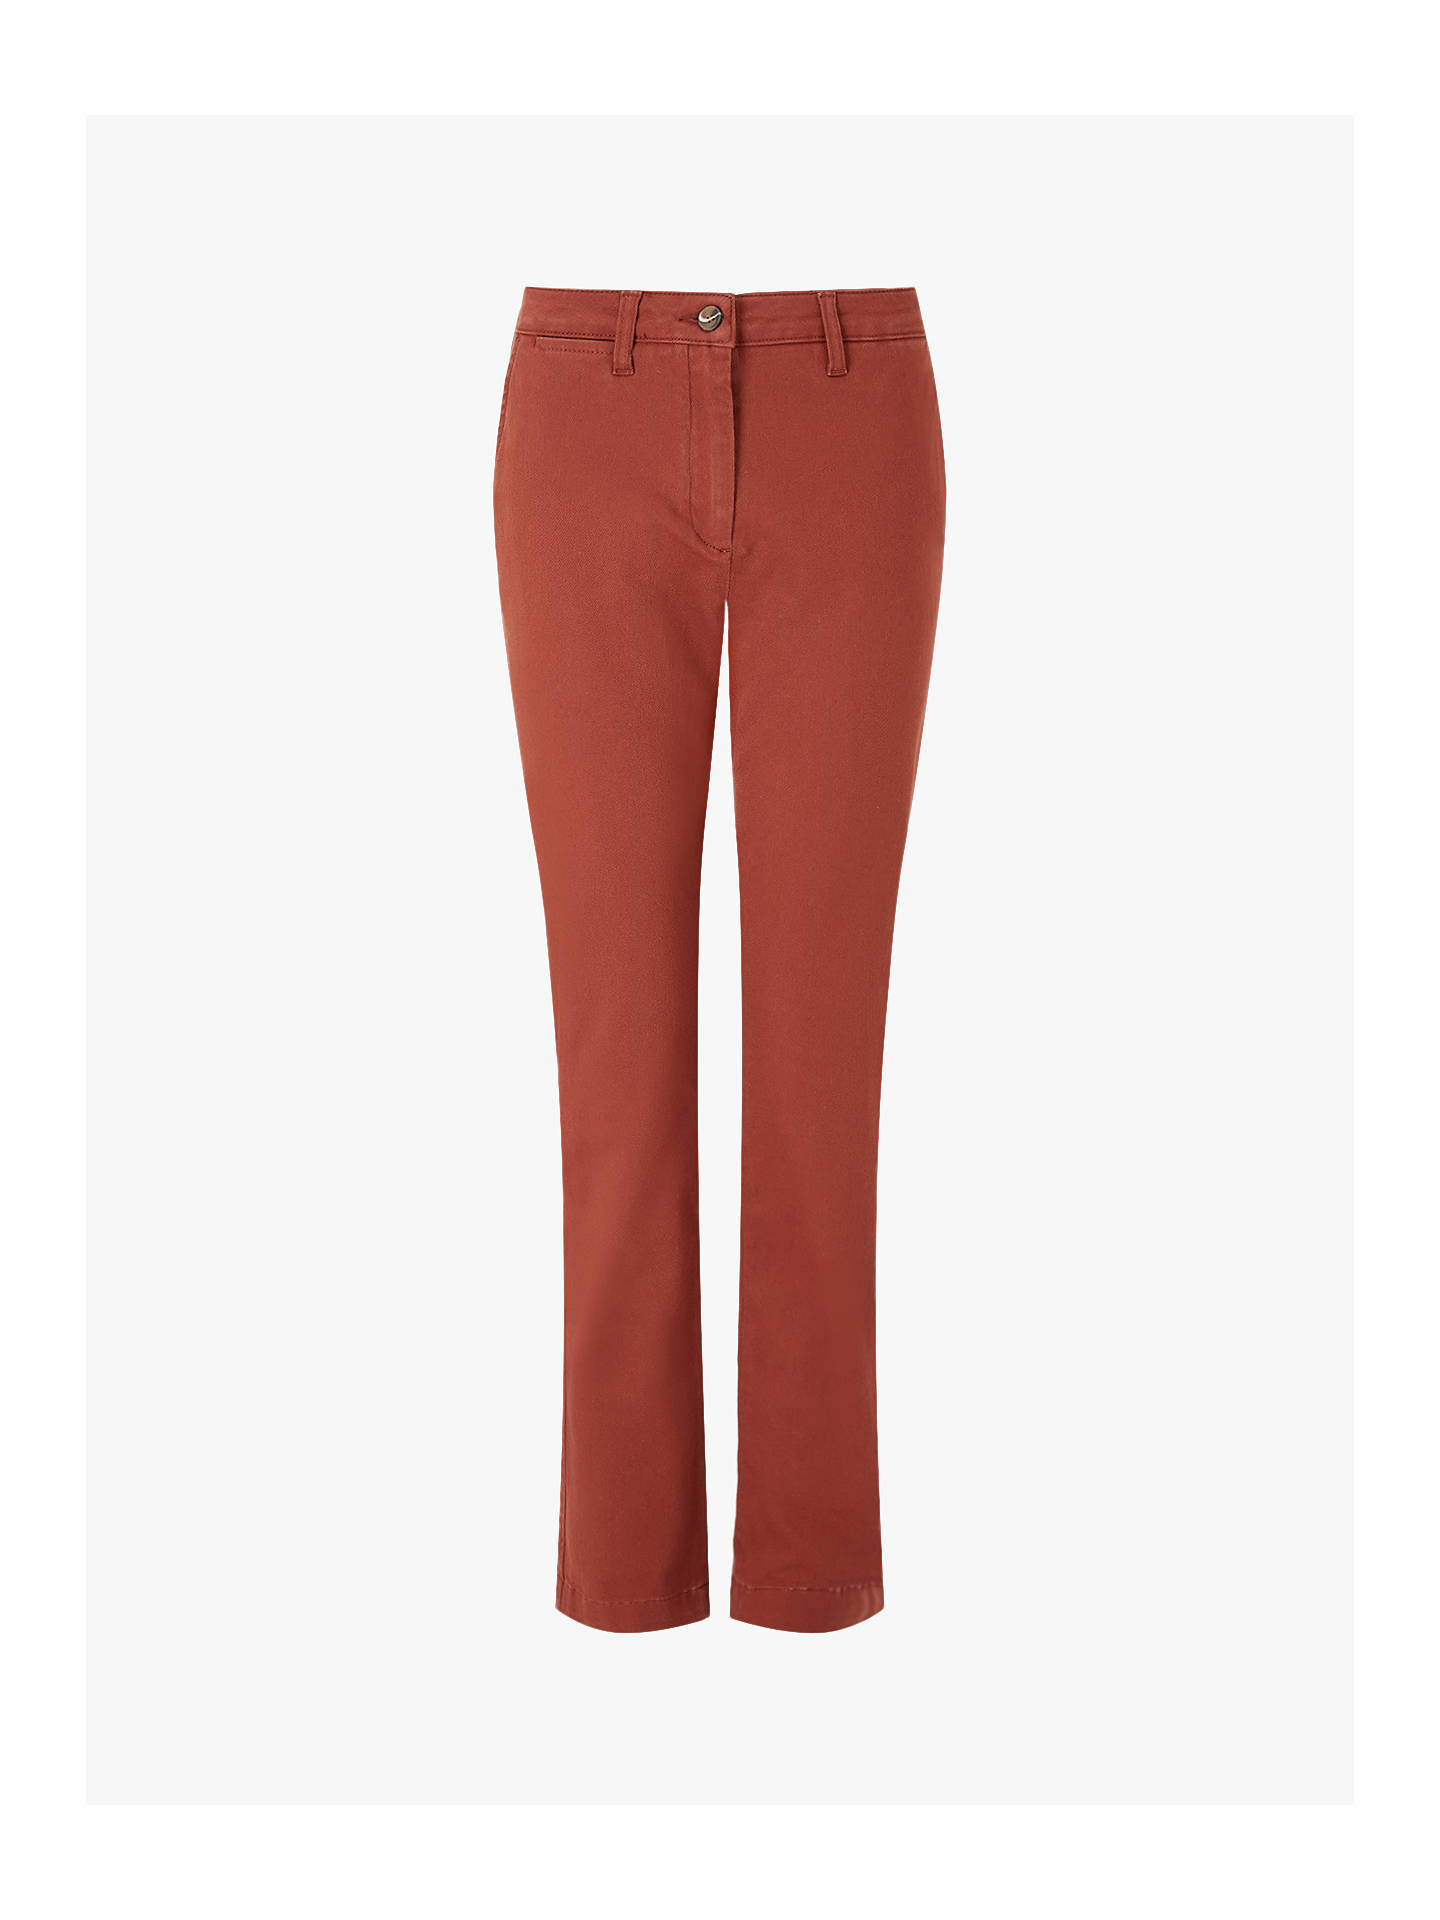 Buy Jigsaw Luxe Drill Cotton Chino, Chestnut, 6 Online at johnlewis.com